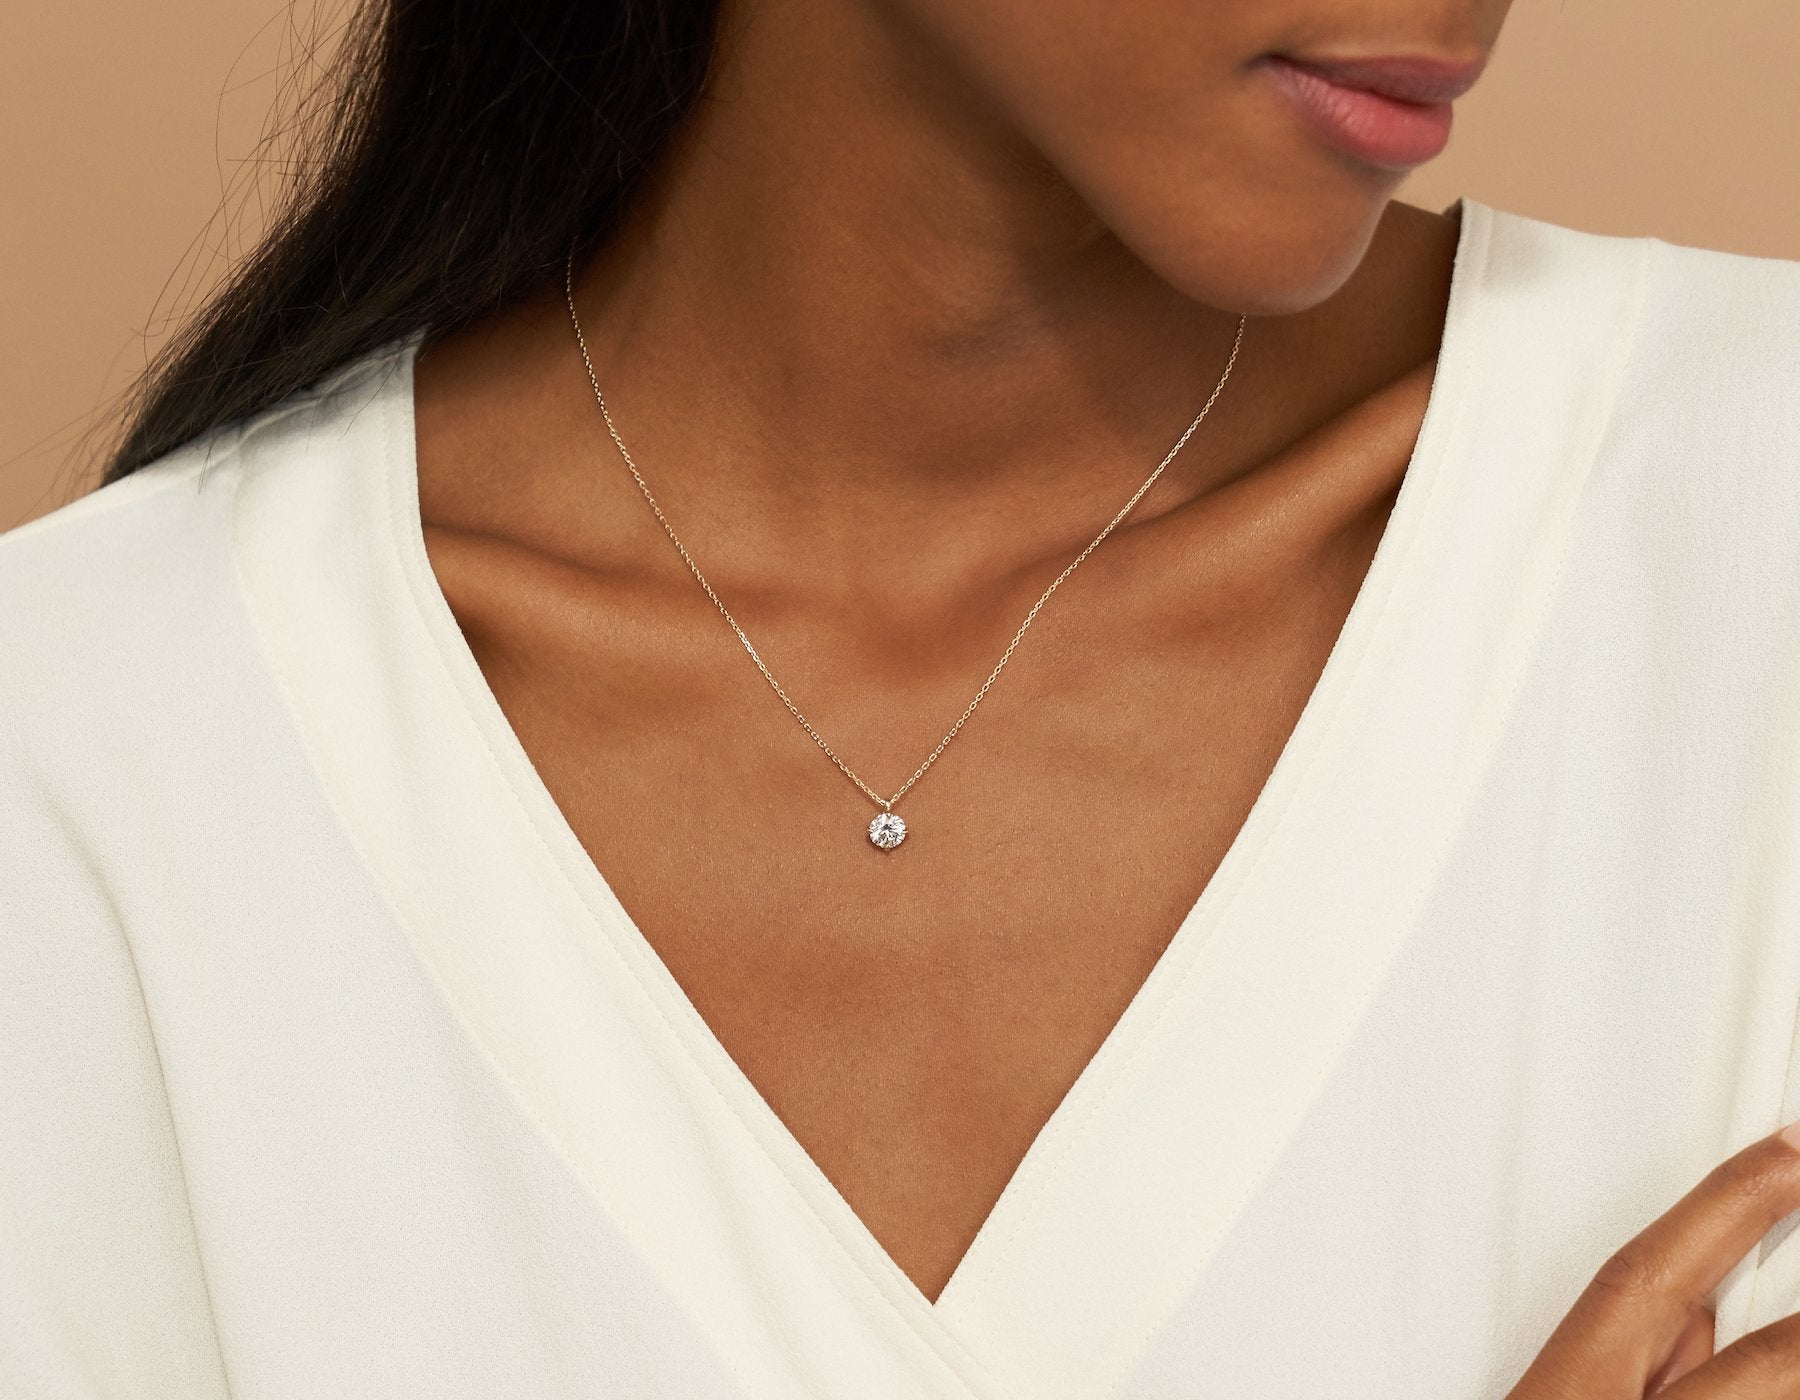 Model wearing Vrai 14K solid gold solitaire round brilliant diamond pendant necklace 1ct minimalist delicate, 14K Rose Gold